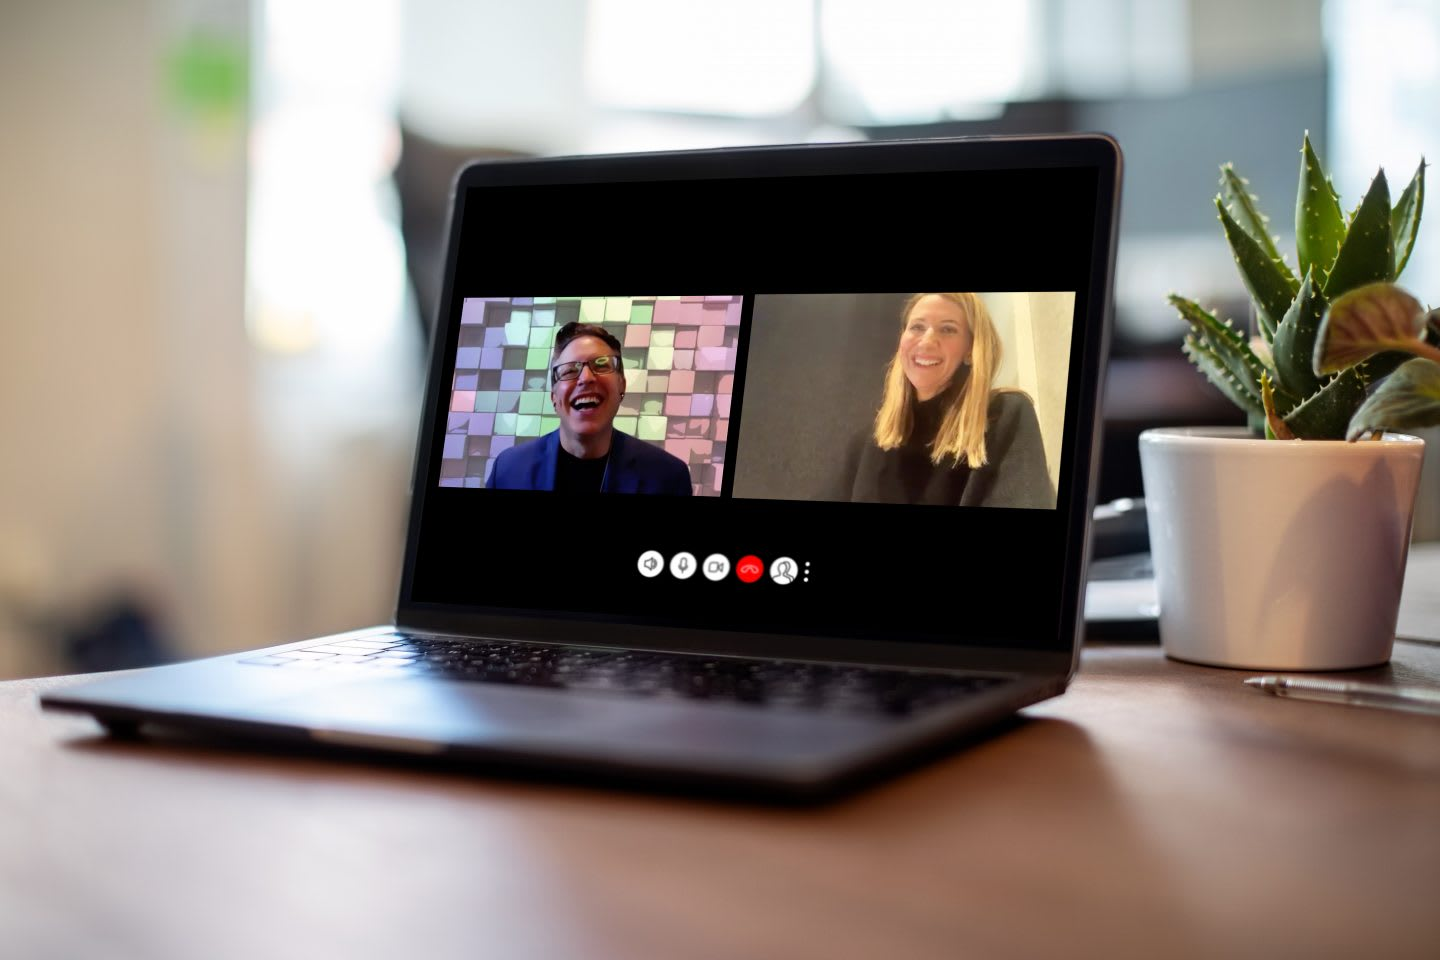 Man and woman having a video call on a laptoWoman having meeting on video call on laptop, connection, technology, meeting, collaboration, teamwork, Aimee Arana, Ronald Beghetto, adidas, LEGO